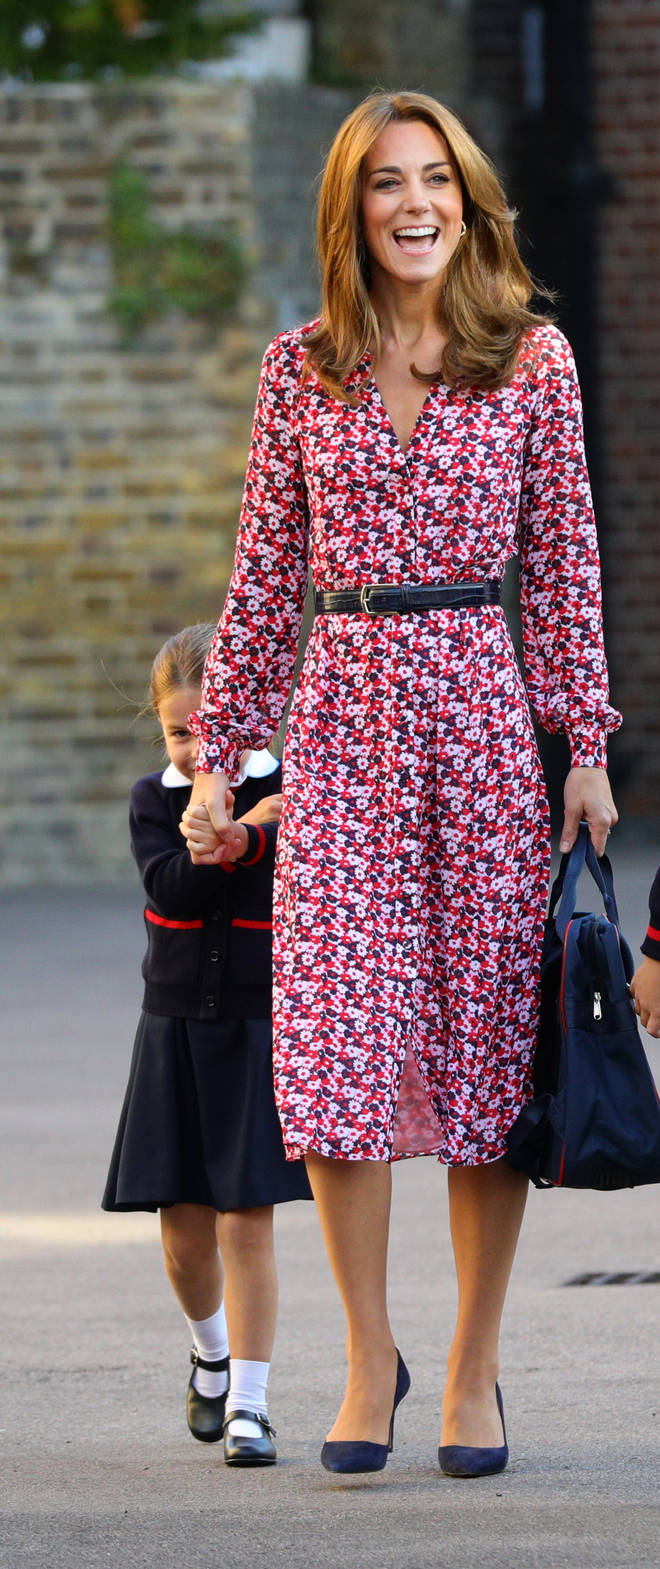 The Duchess of Cambridge missed George's first day of school after suffering from morning sickness with Prince Louis